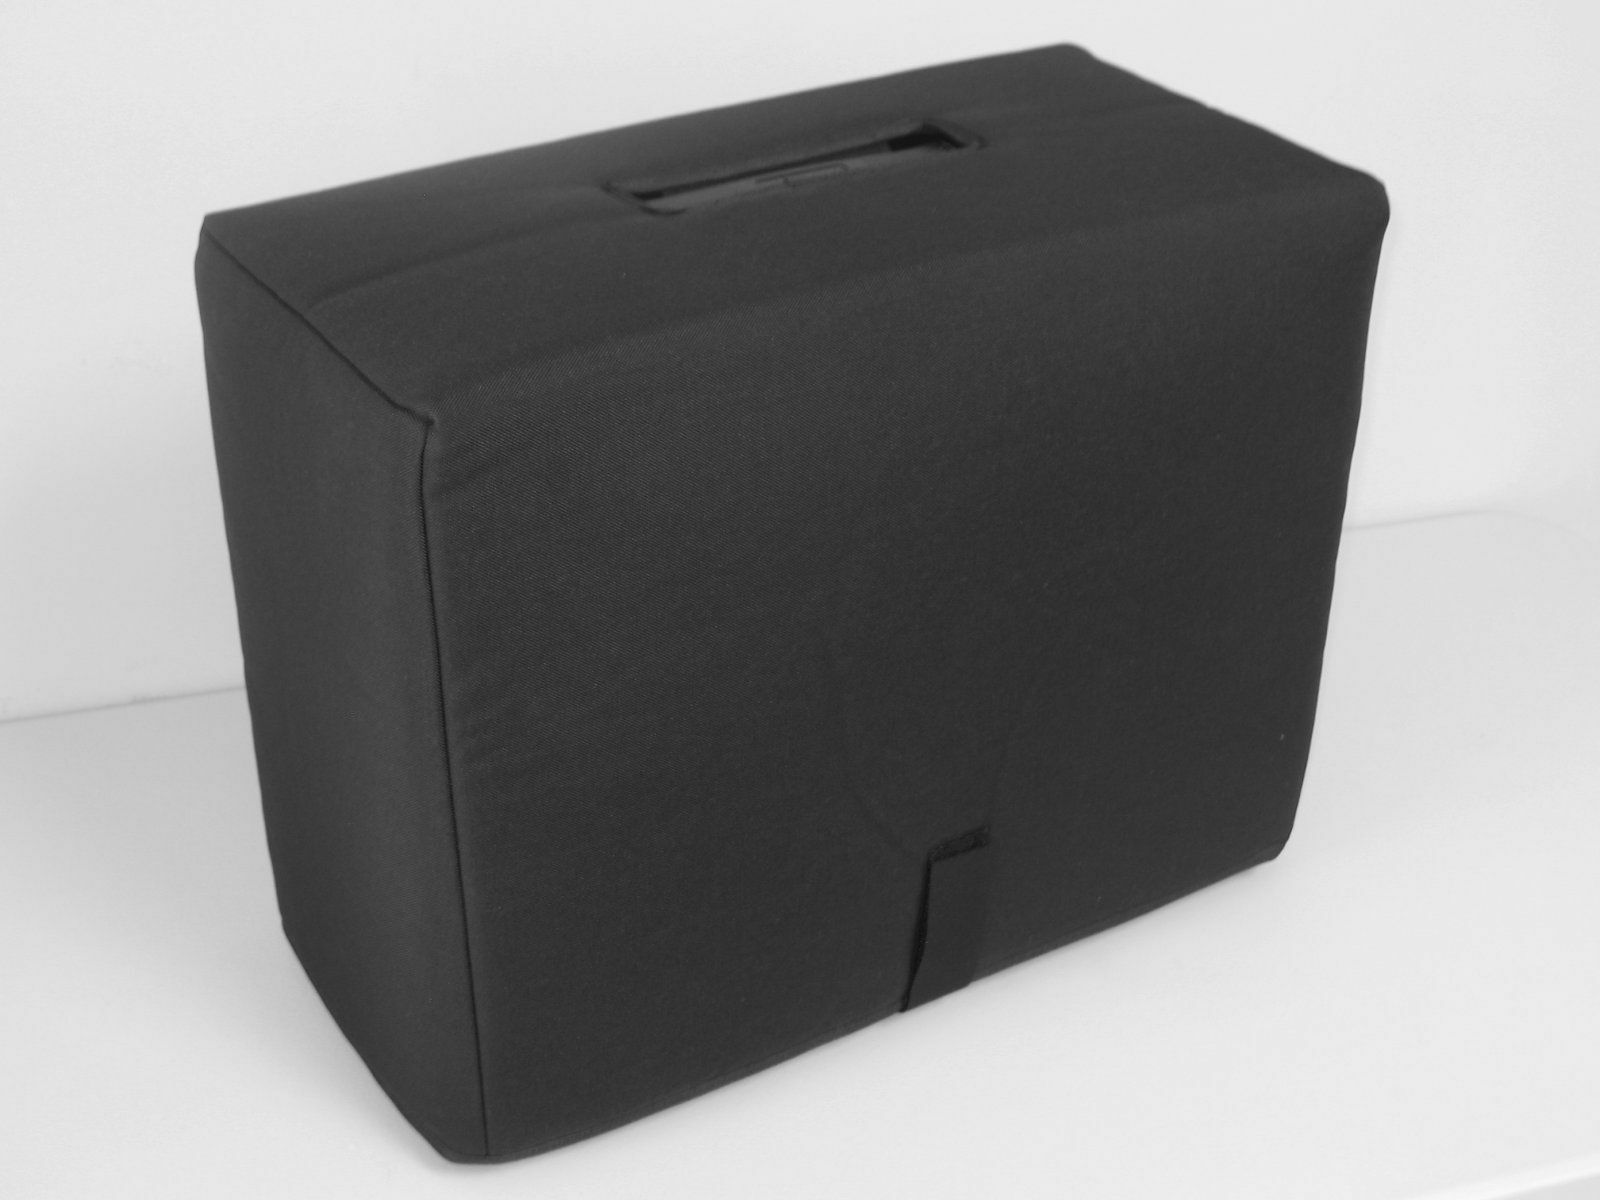 Tuki Padded Amp Cover for Crate V33 2x12 Combo 1 2  Foam (crat071p)